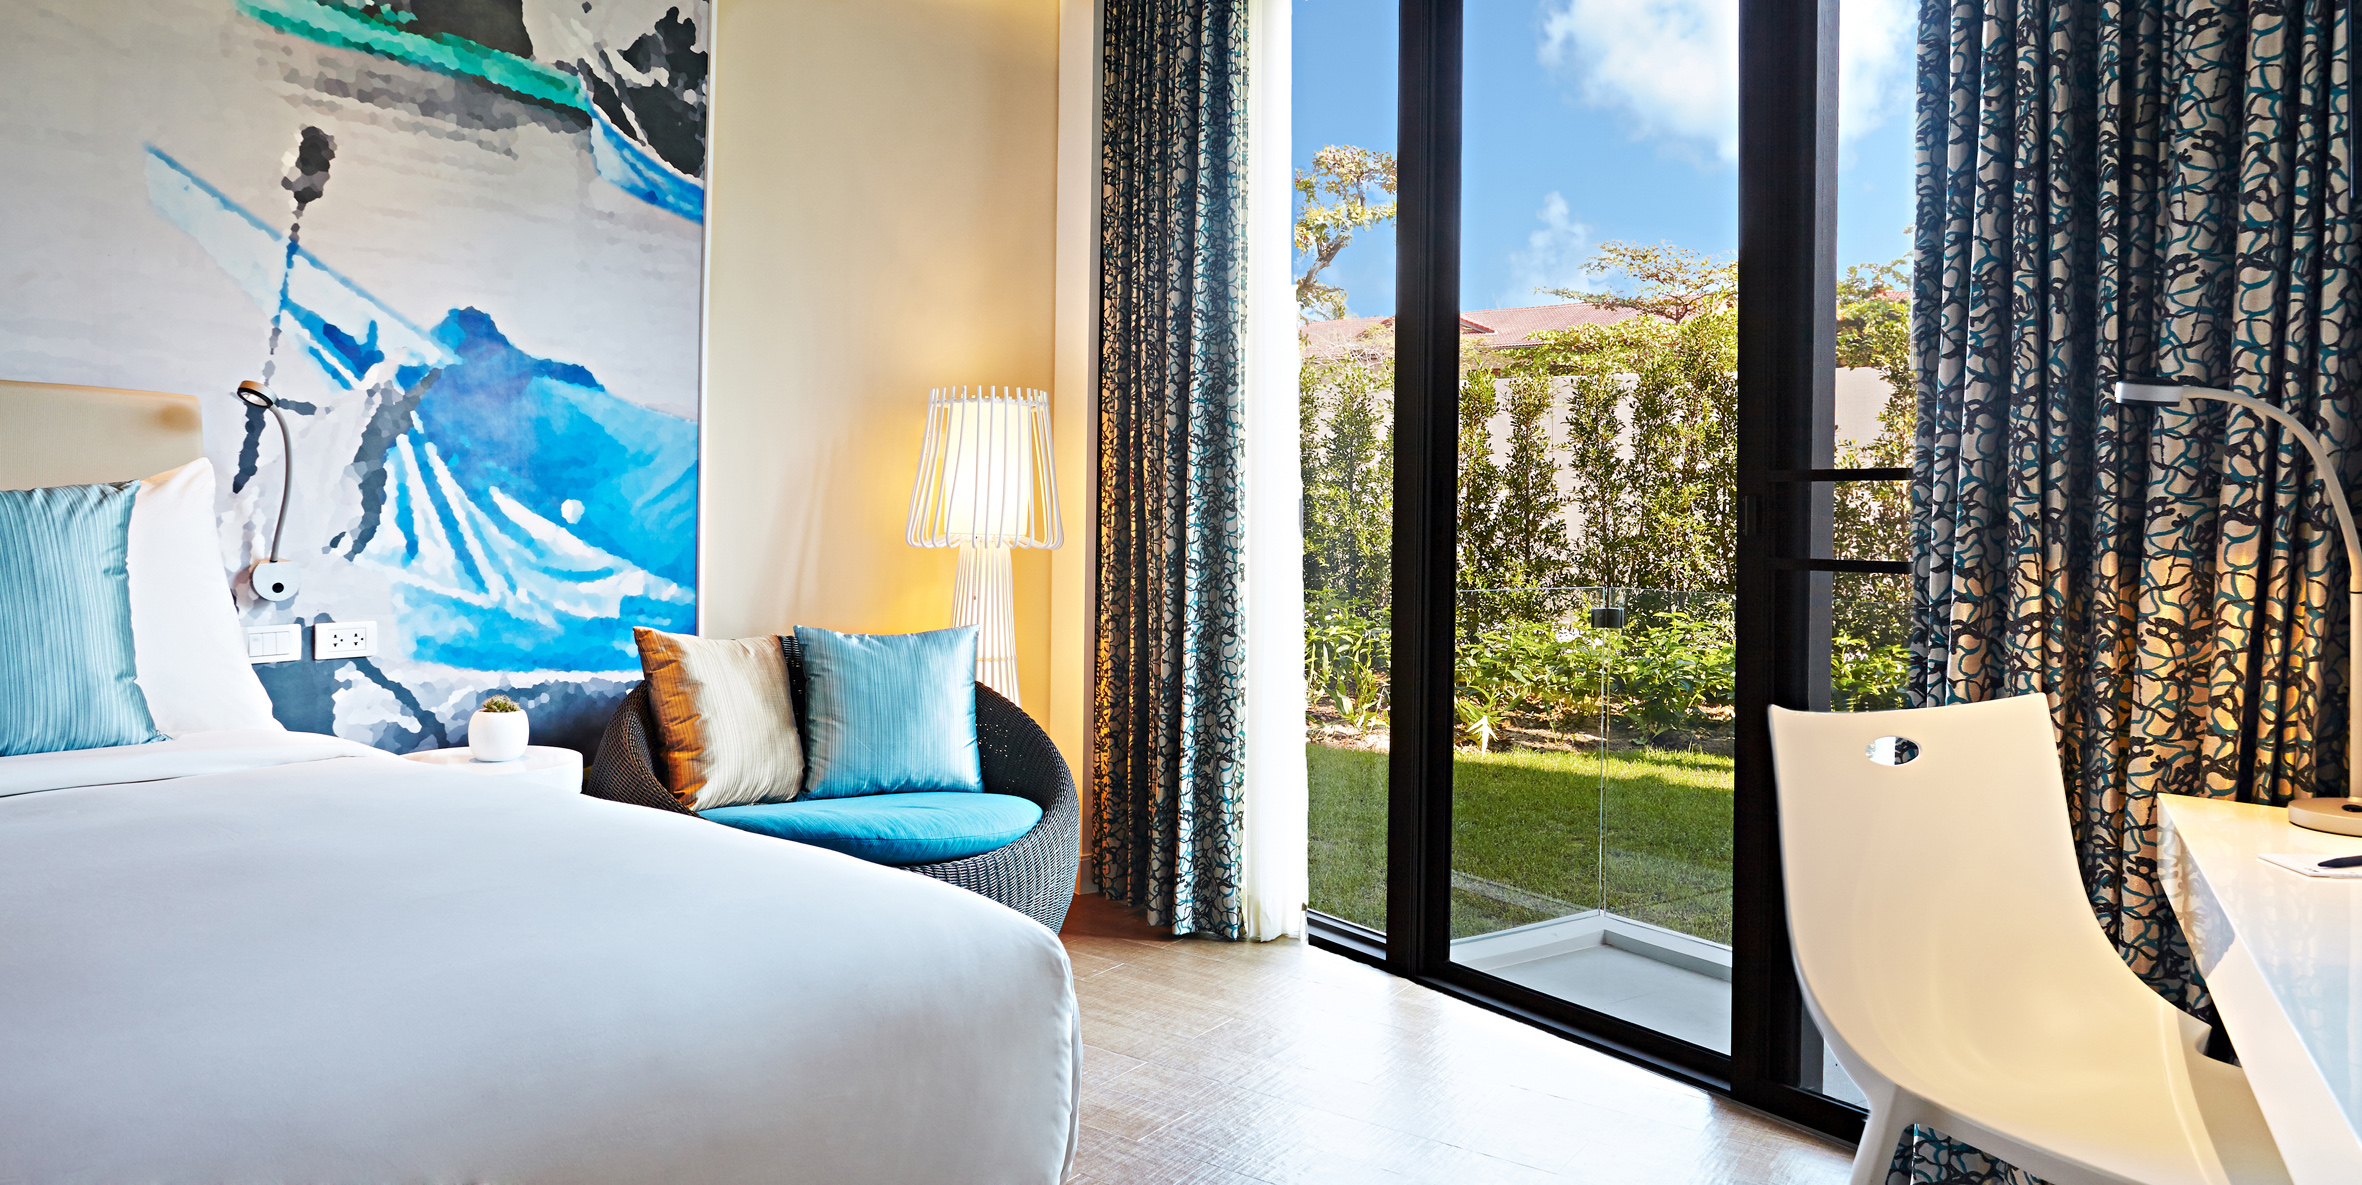 Travel and hotel hacks from an actual hotel company, ONYX Hospitality Group - Alvinology